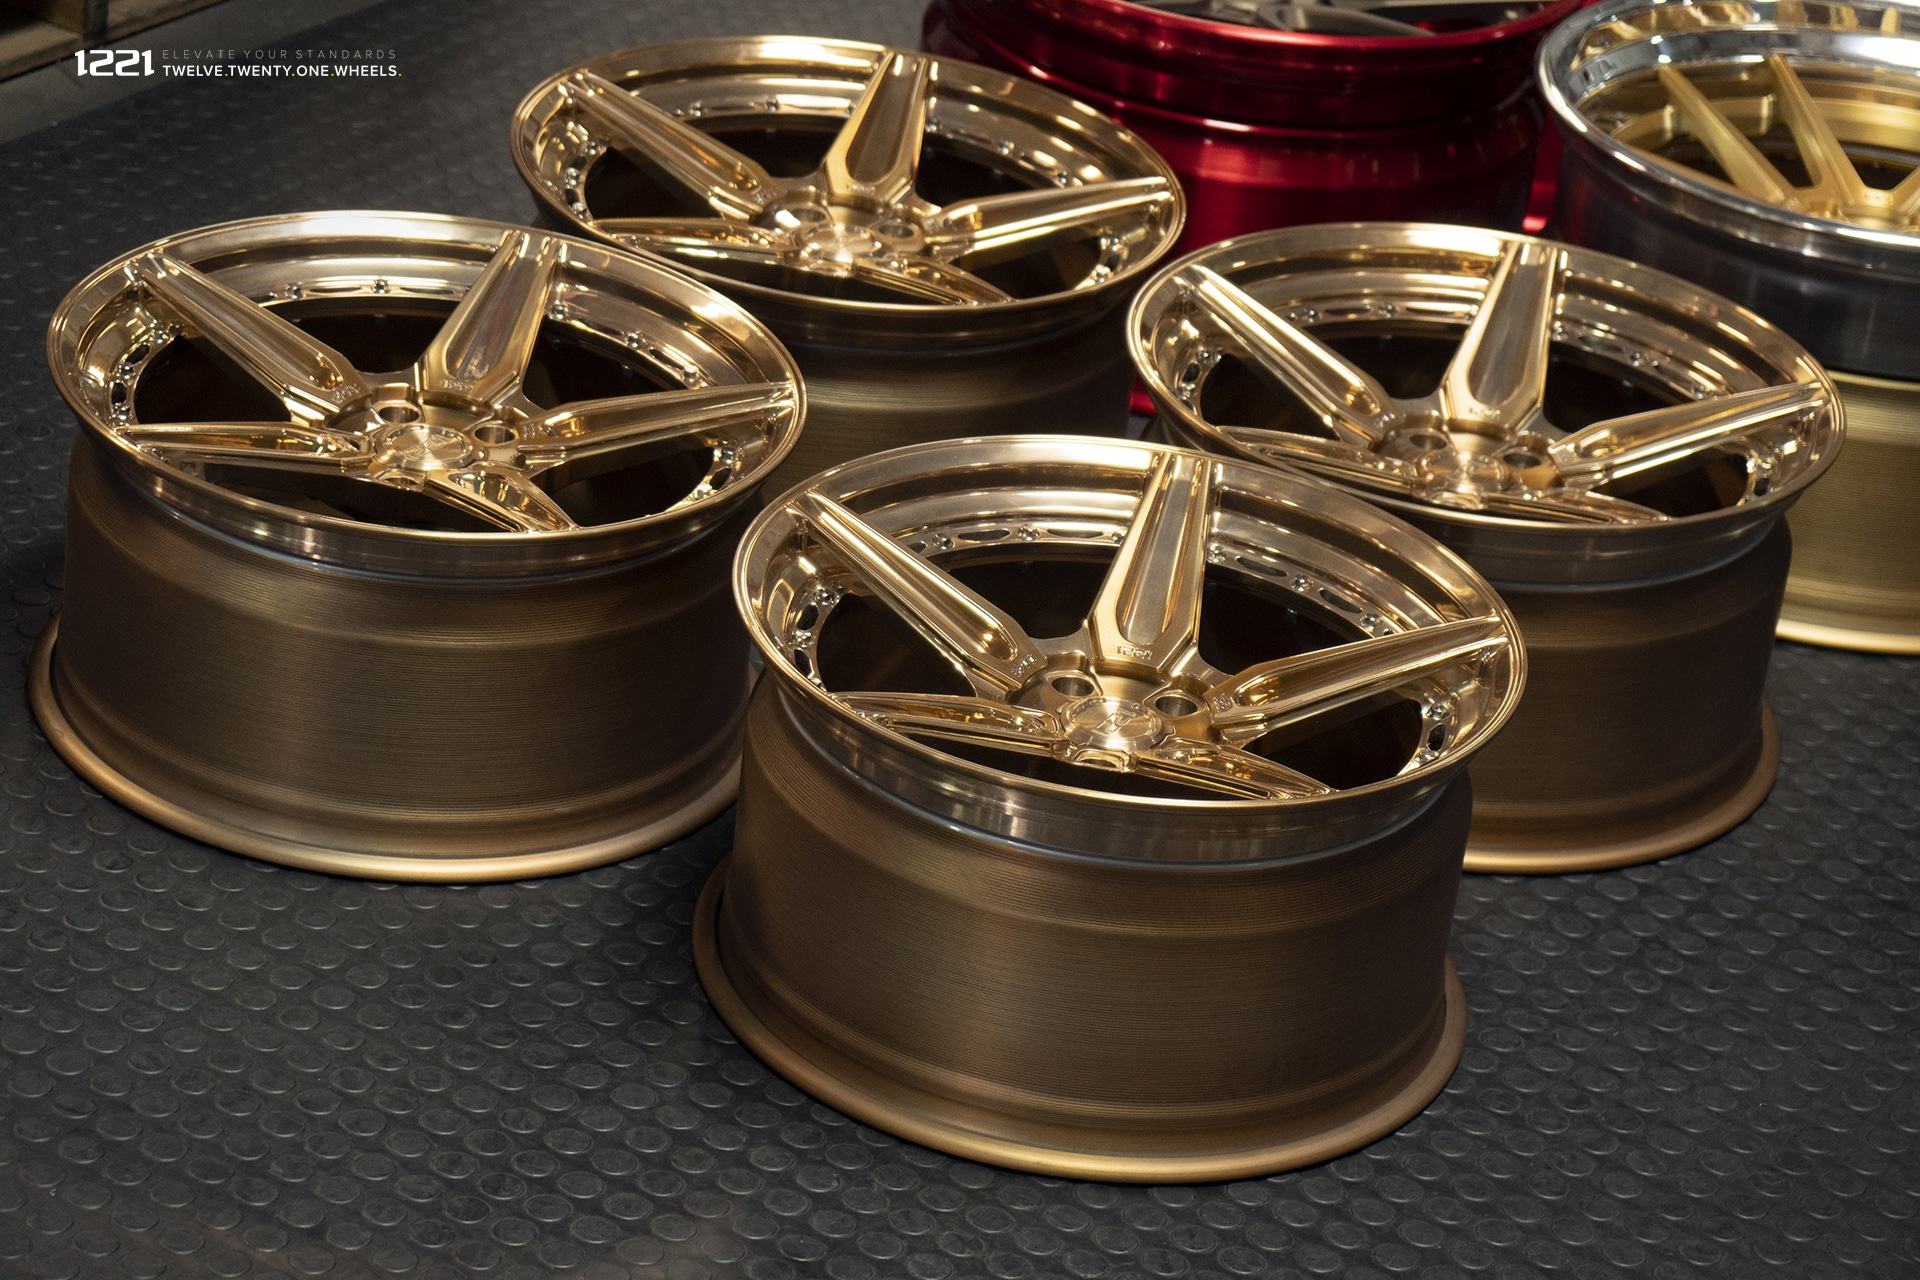 1221 brushed polished bronze finish concave wheels